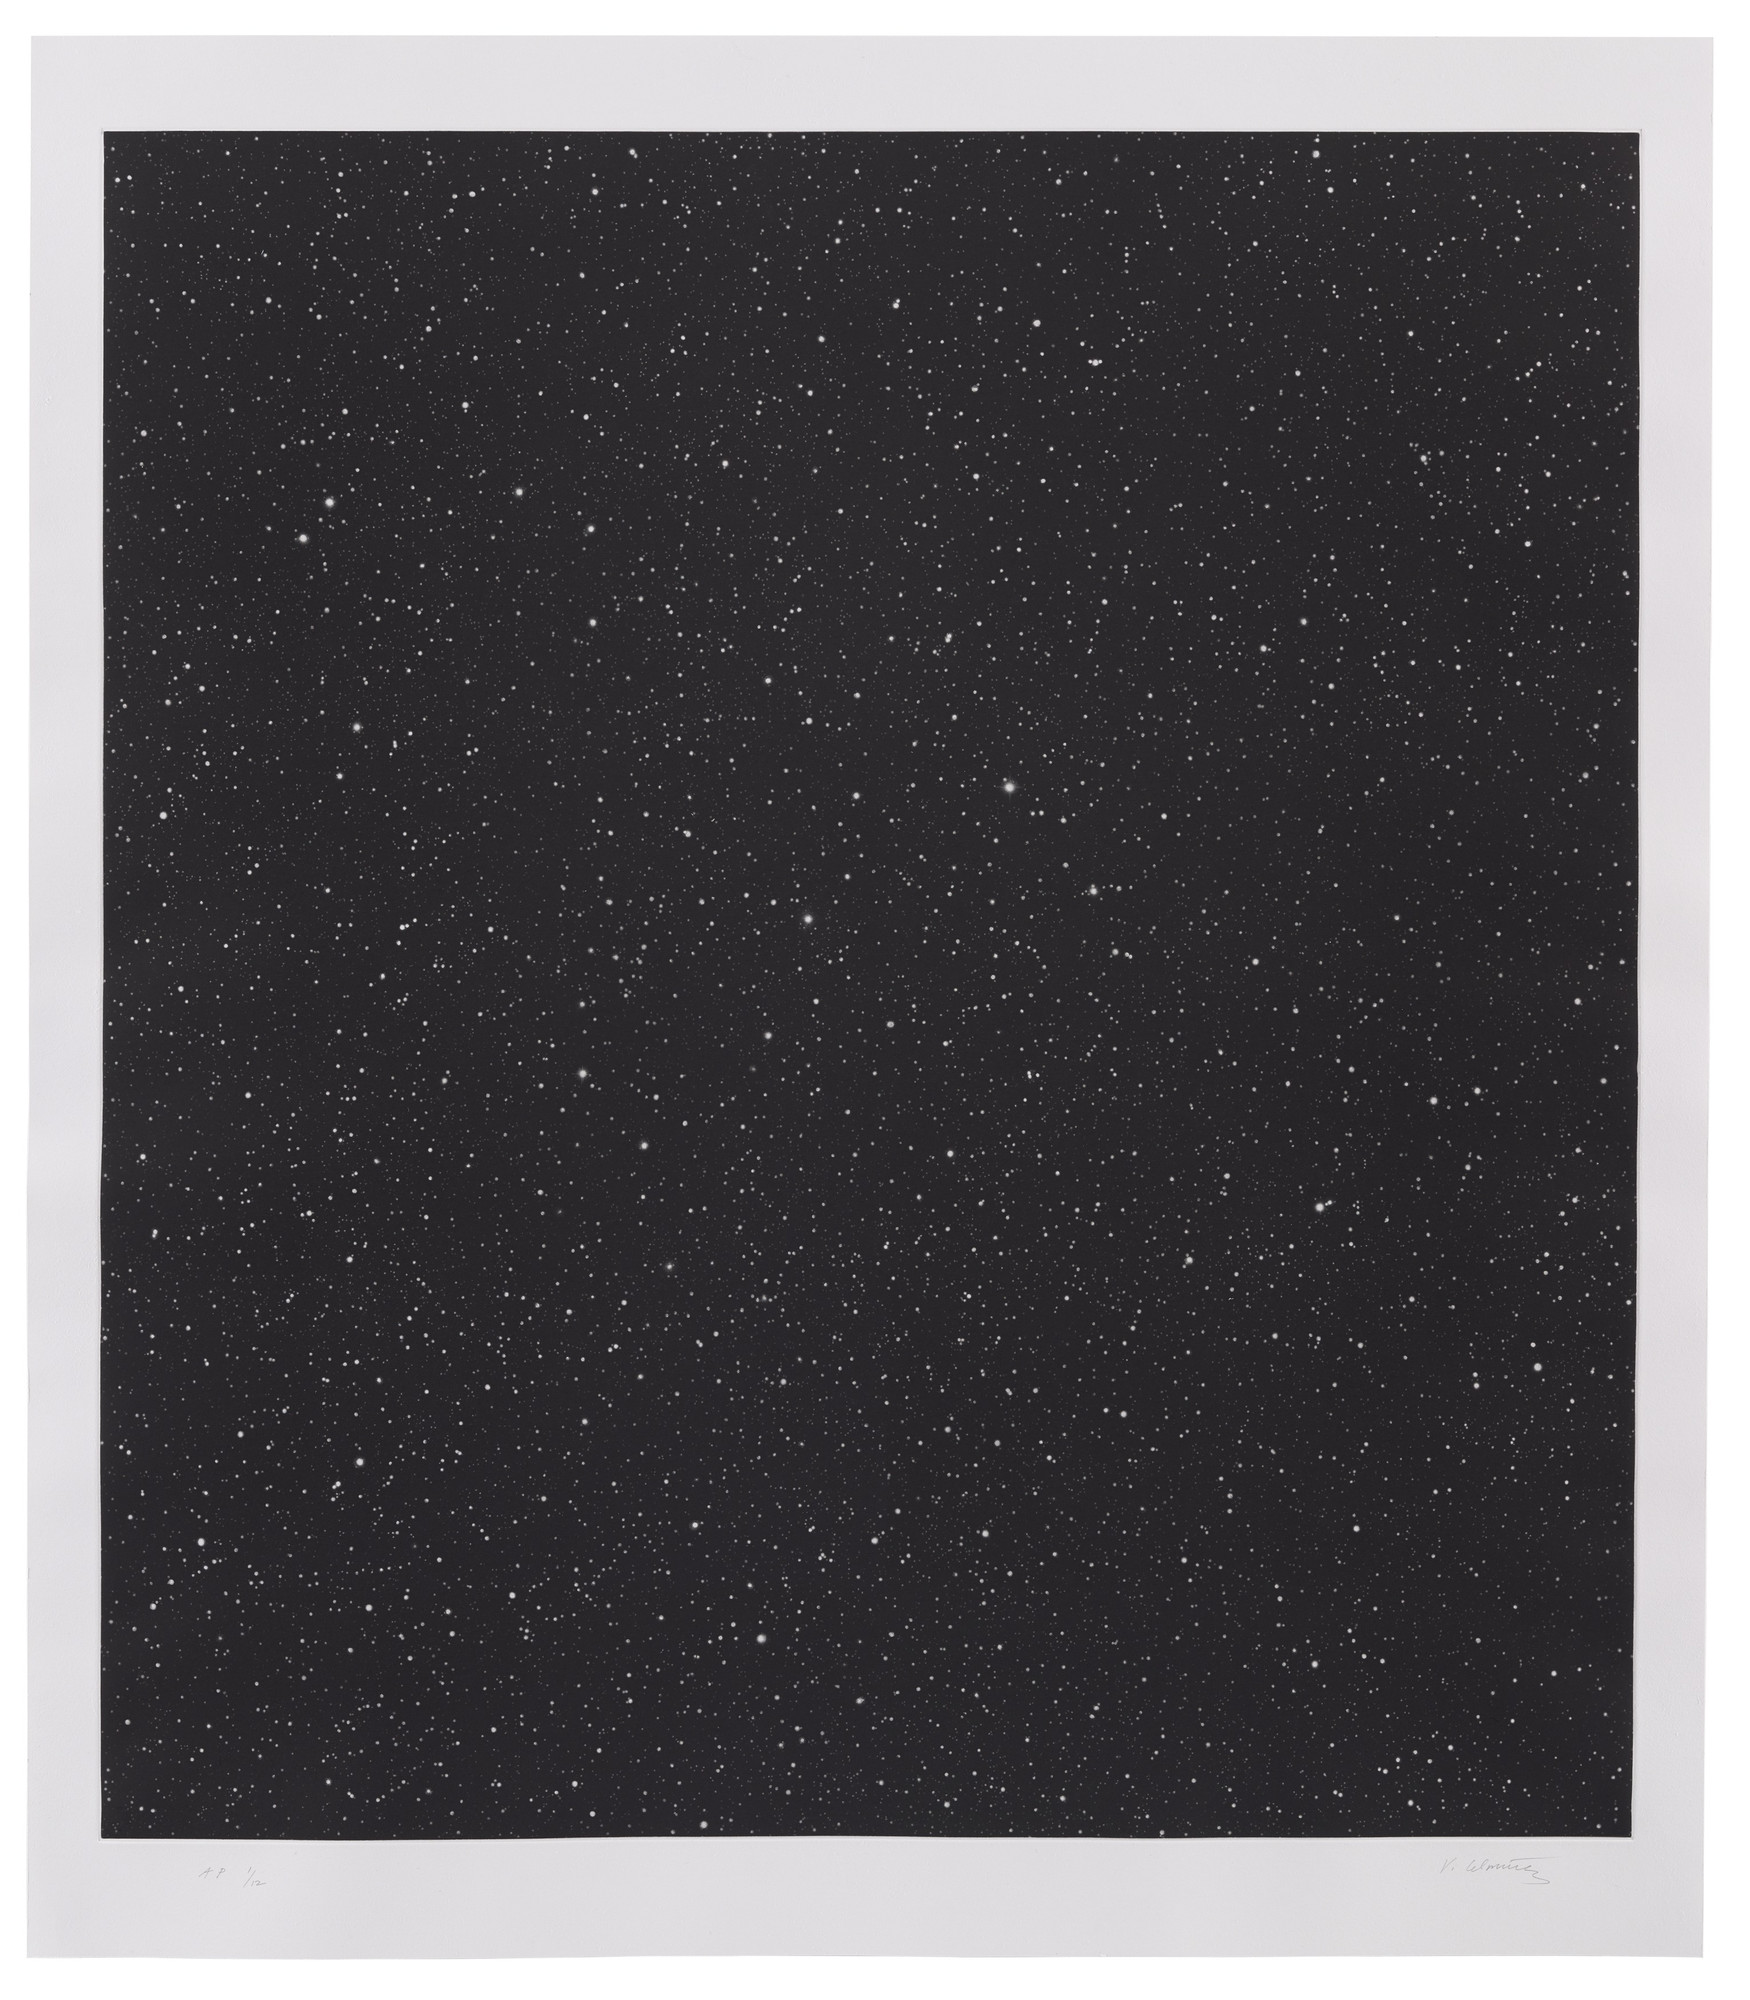 Vija Celmins. Untitled (Large Night Sky). 2016